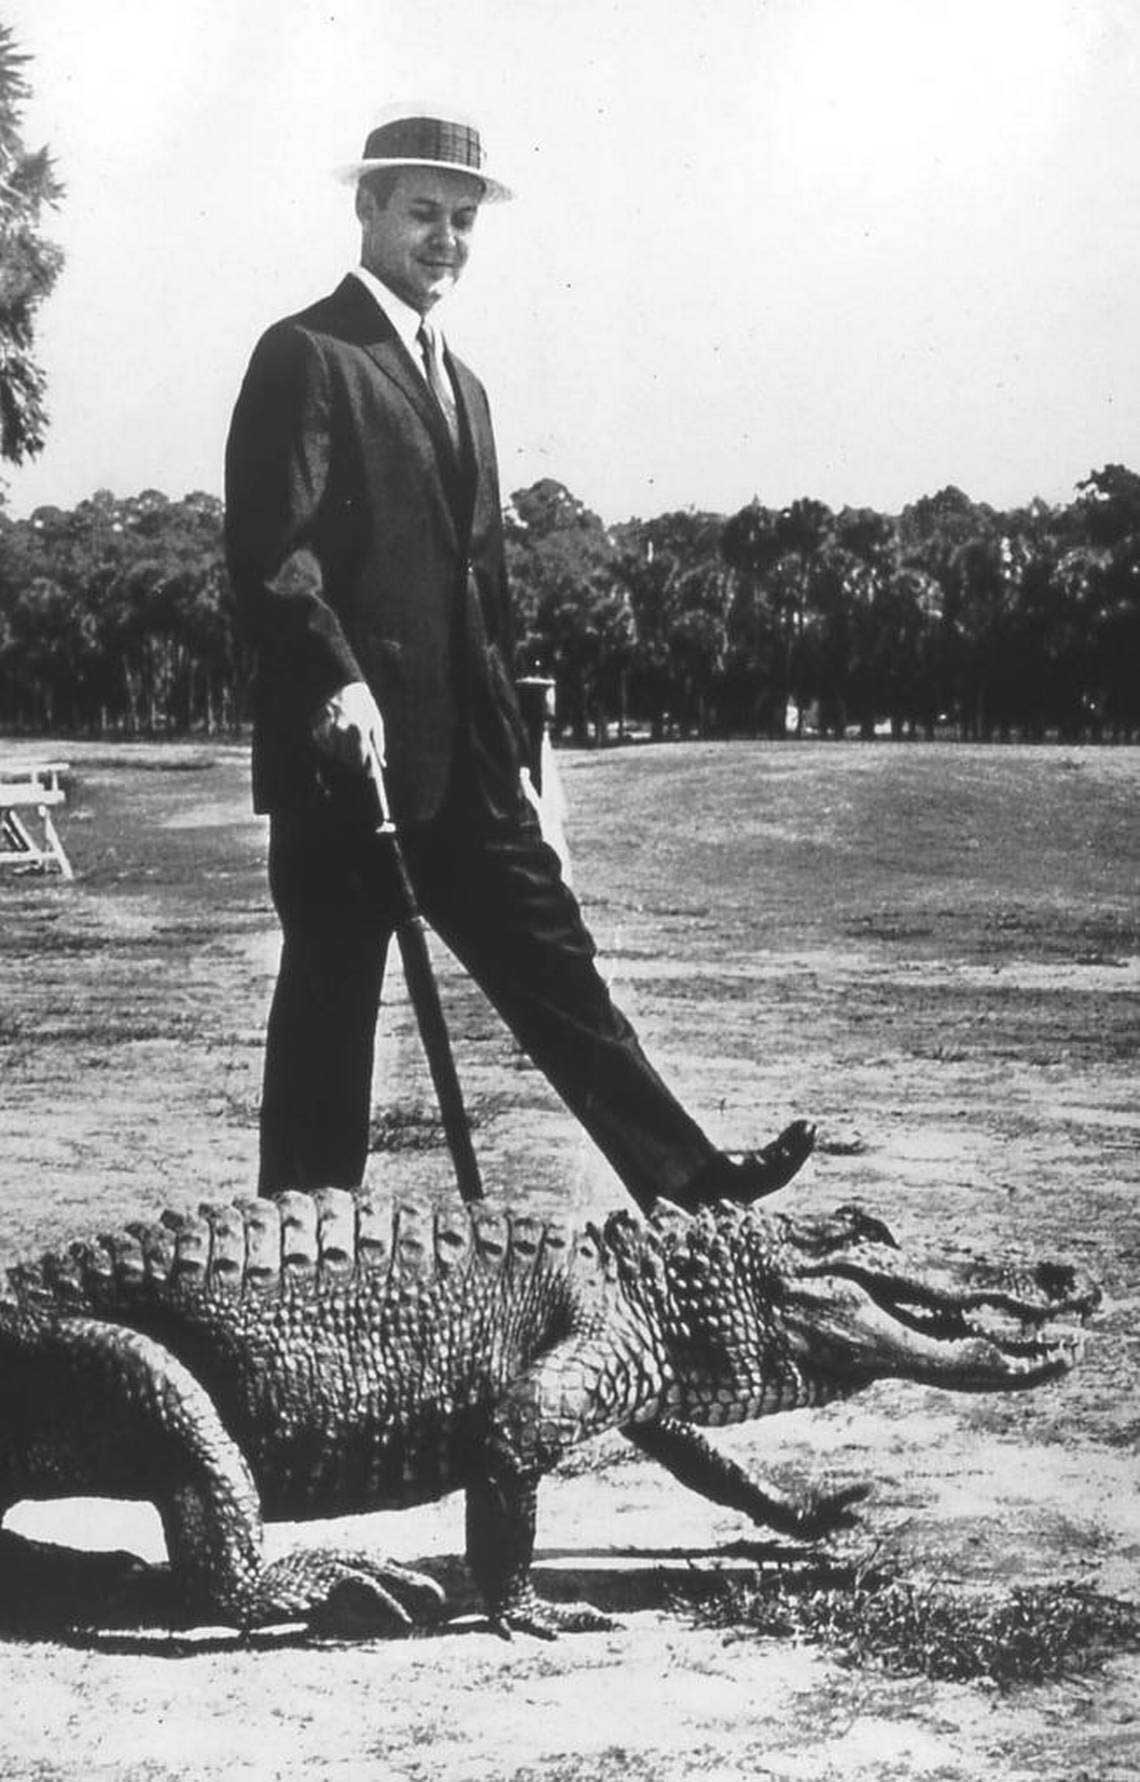 Sea Pines founder Charles Fraser and an alligator from a 1962 edition of The Saturday Evening Post, which featured Fraser's then-new Sea Pines resort. Saturday Evening Post/Coastal Discovery Museum